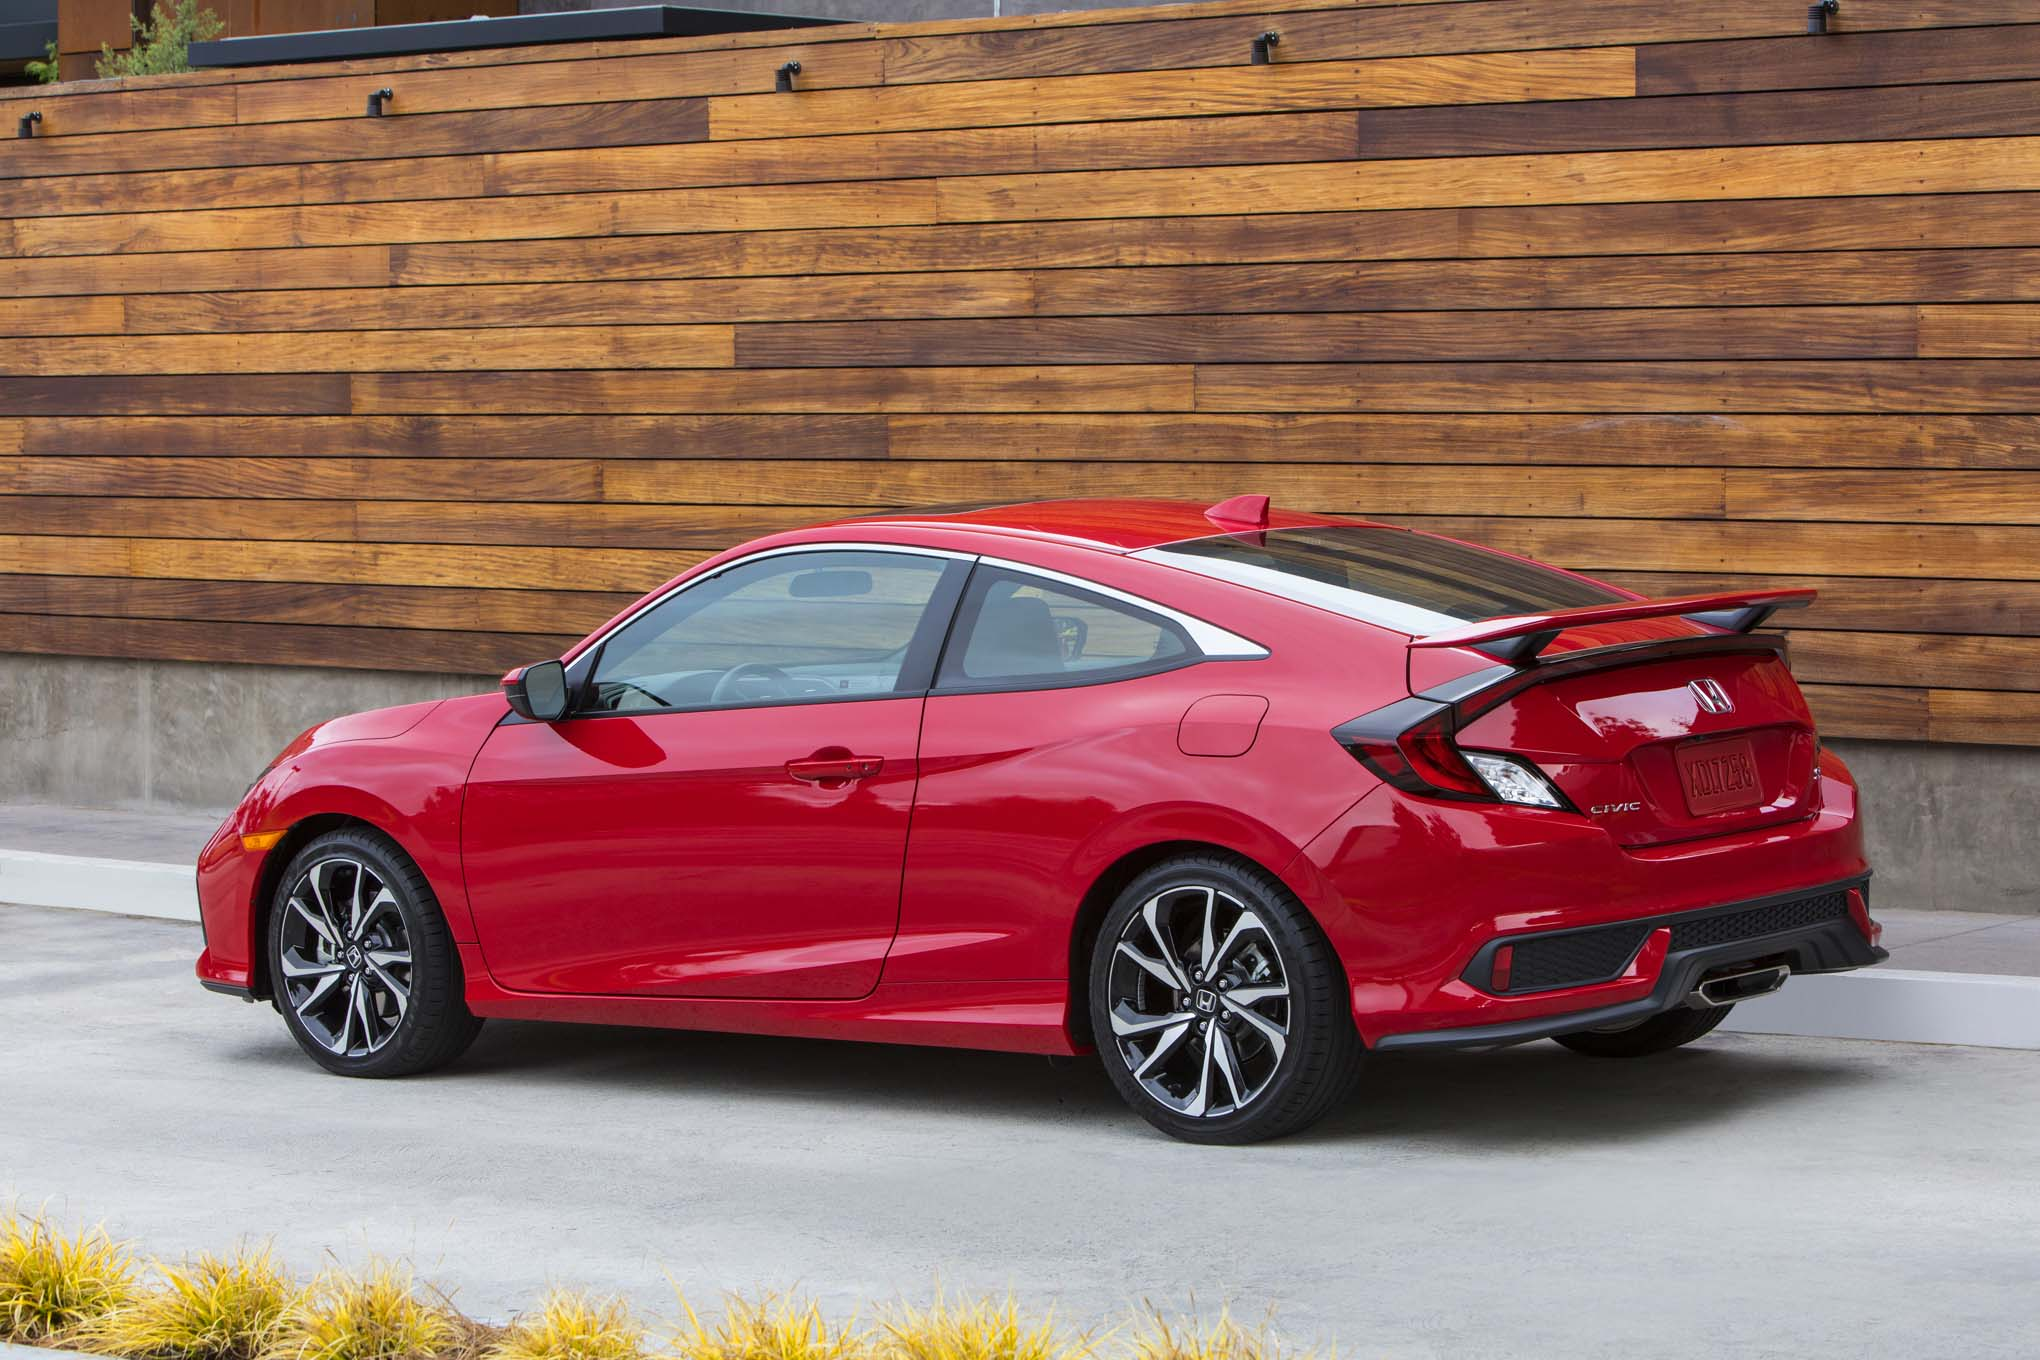 2017 honda civic si first drive review automobile magazine for Si honda civic